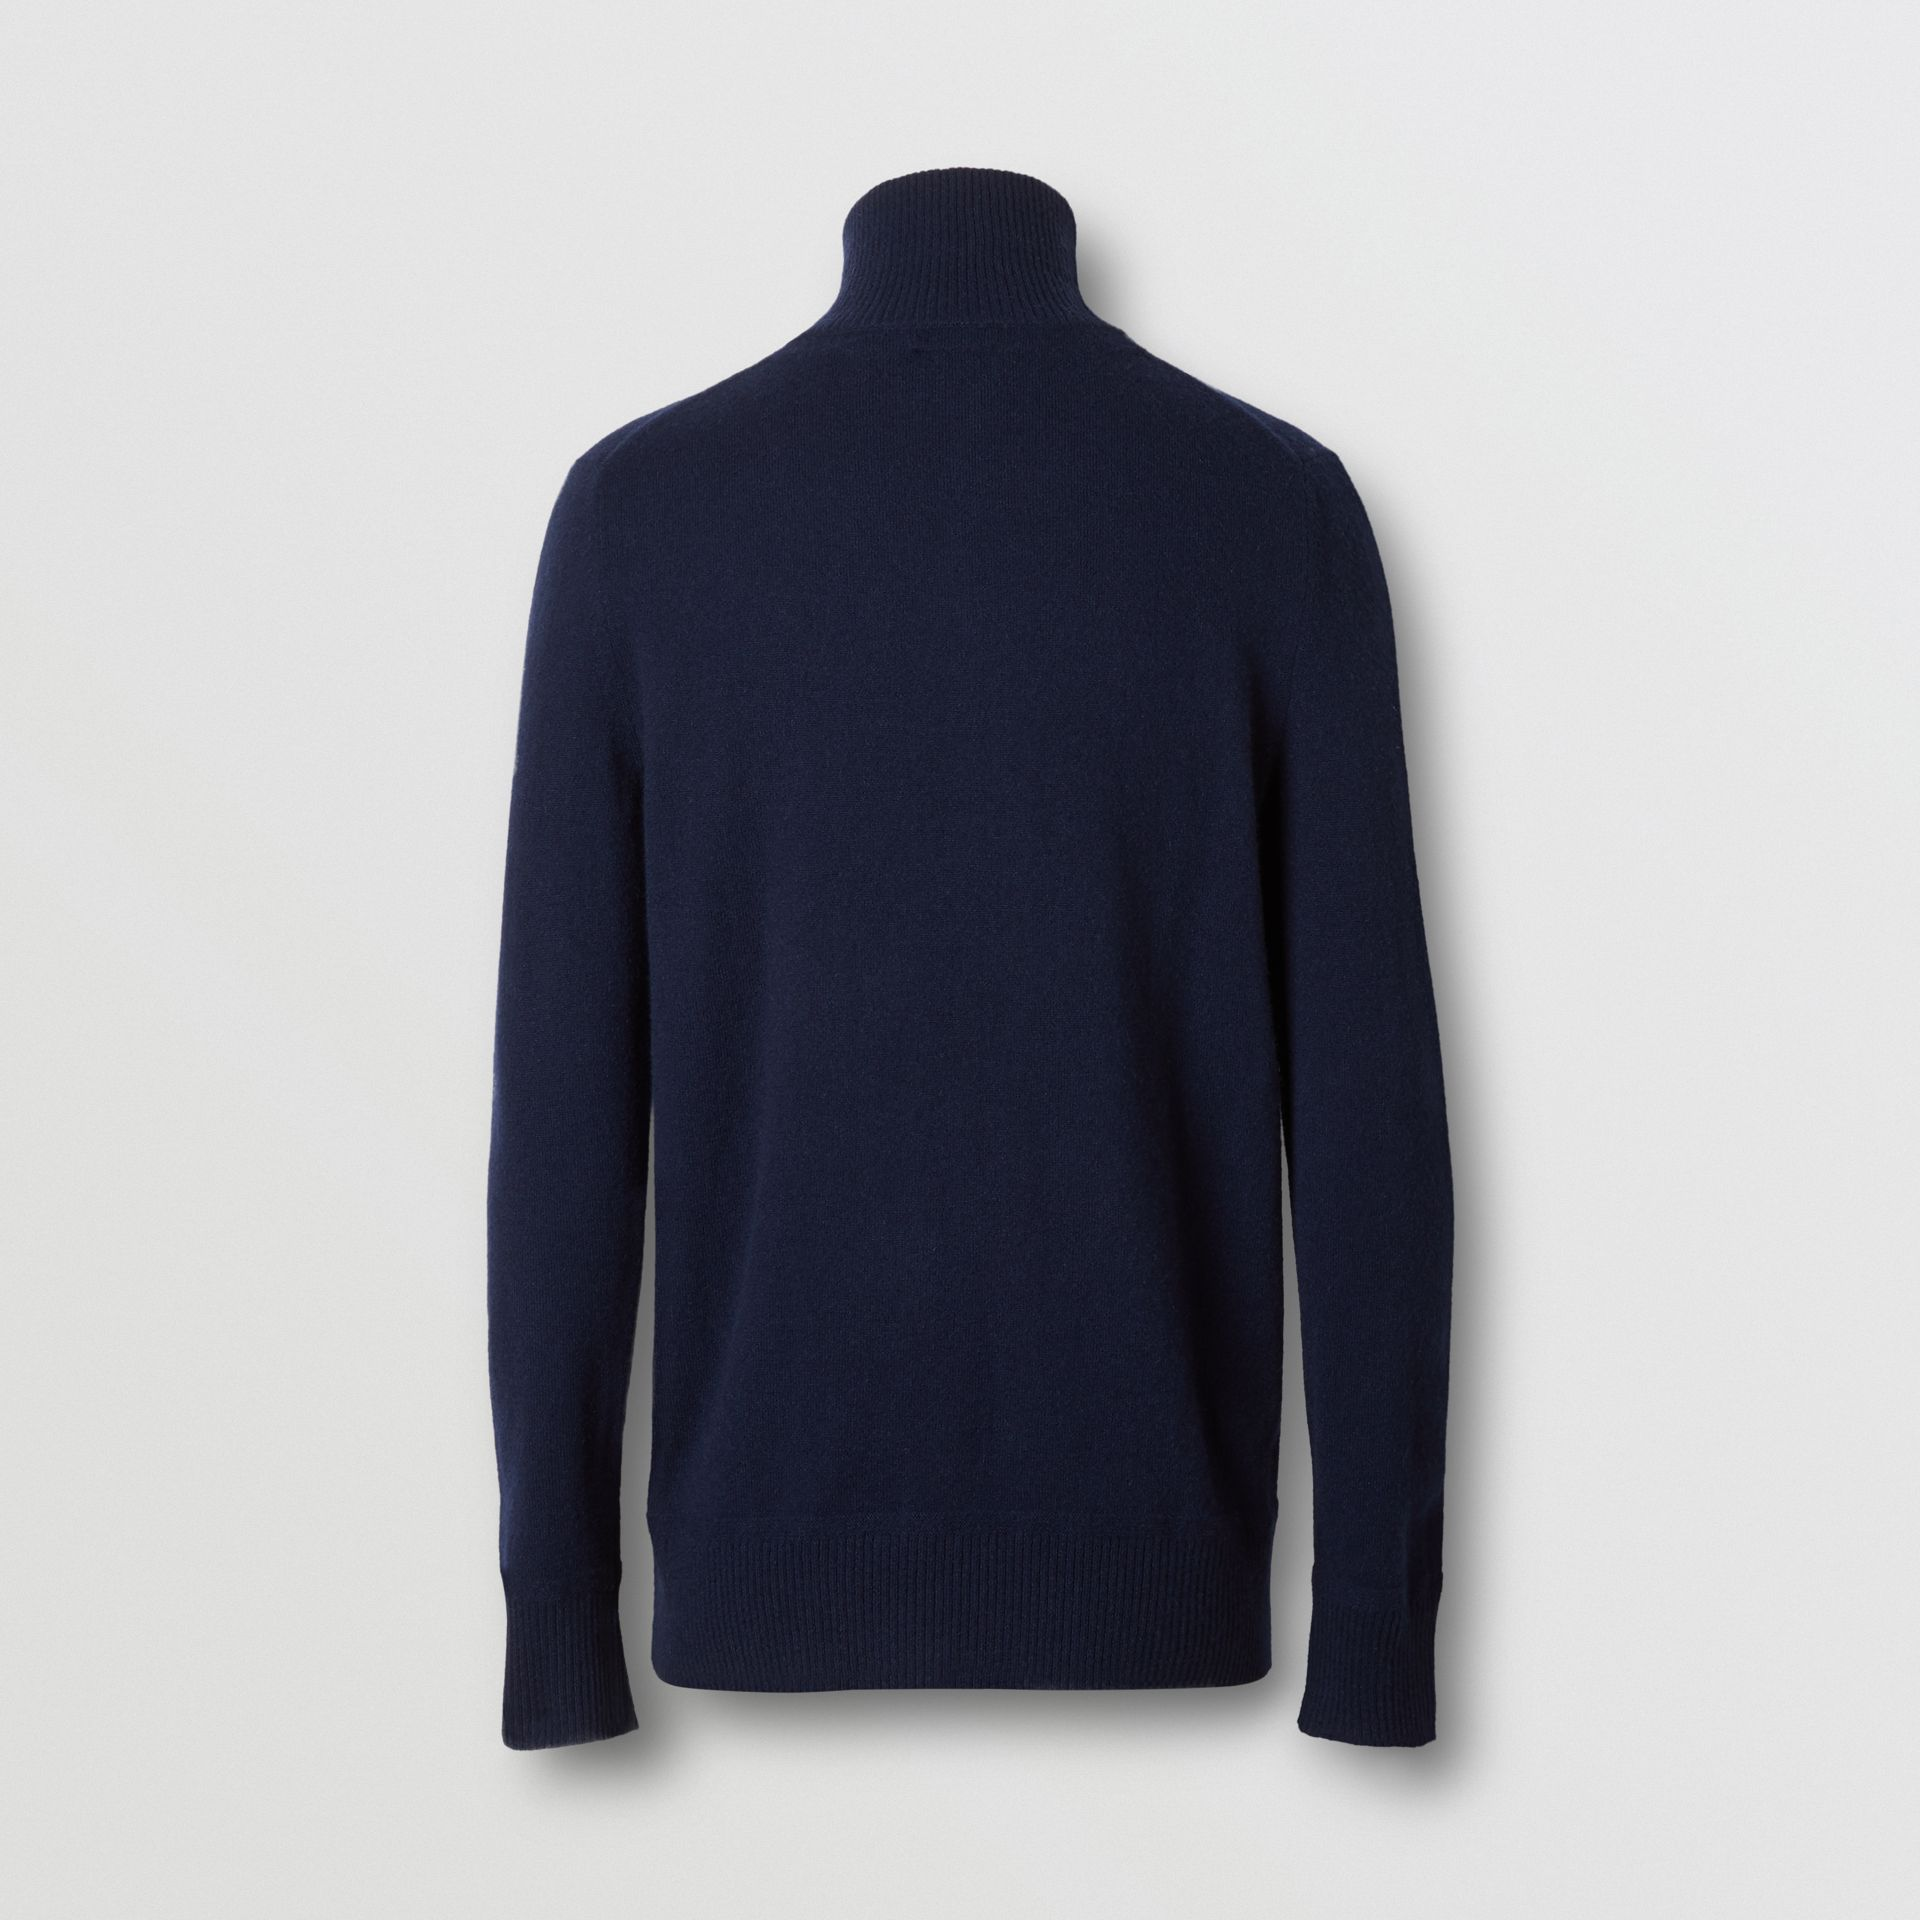 Monogram Motif Cashmere Funnel Neck Sweater in Navy - Men | Burberry Hong Kong S.A.R - gallery image 5